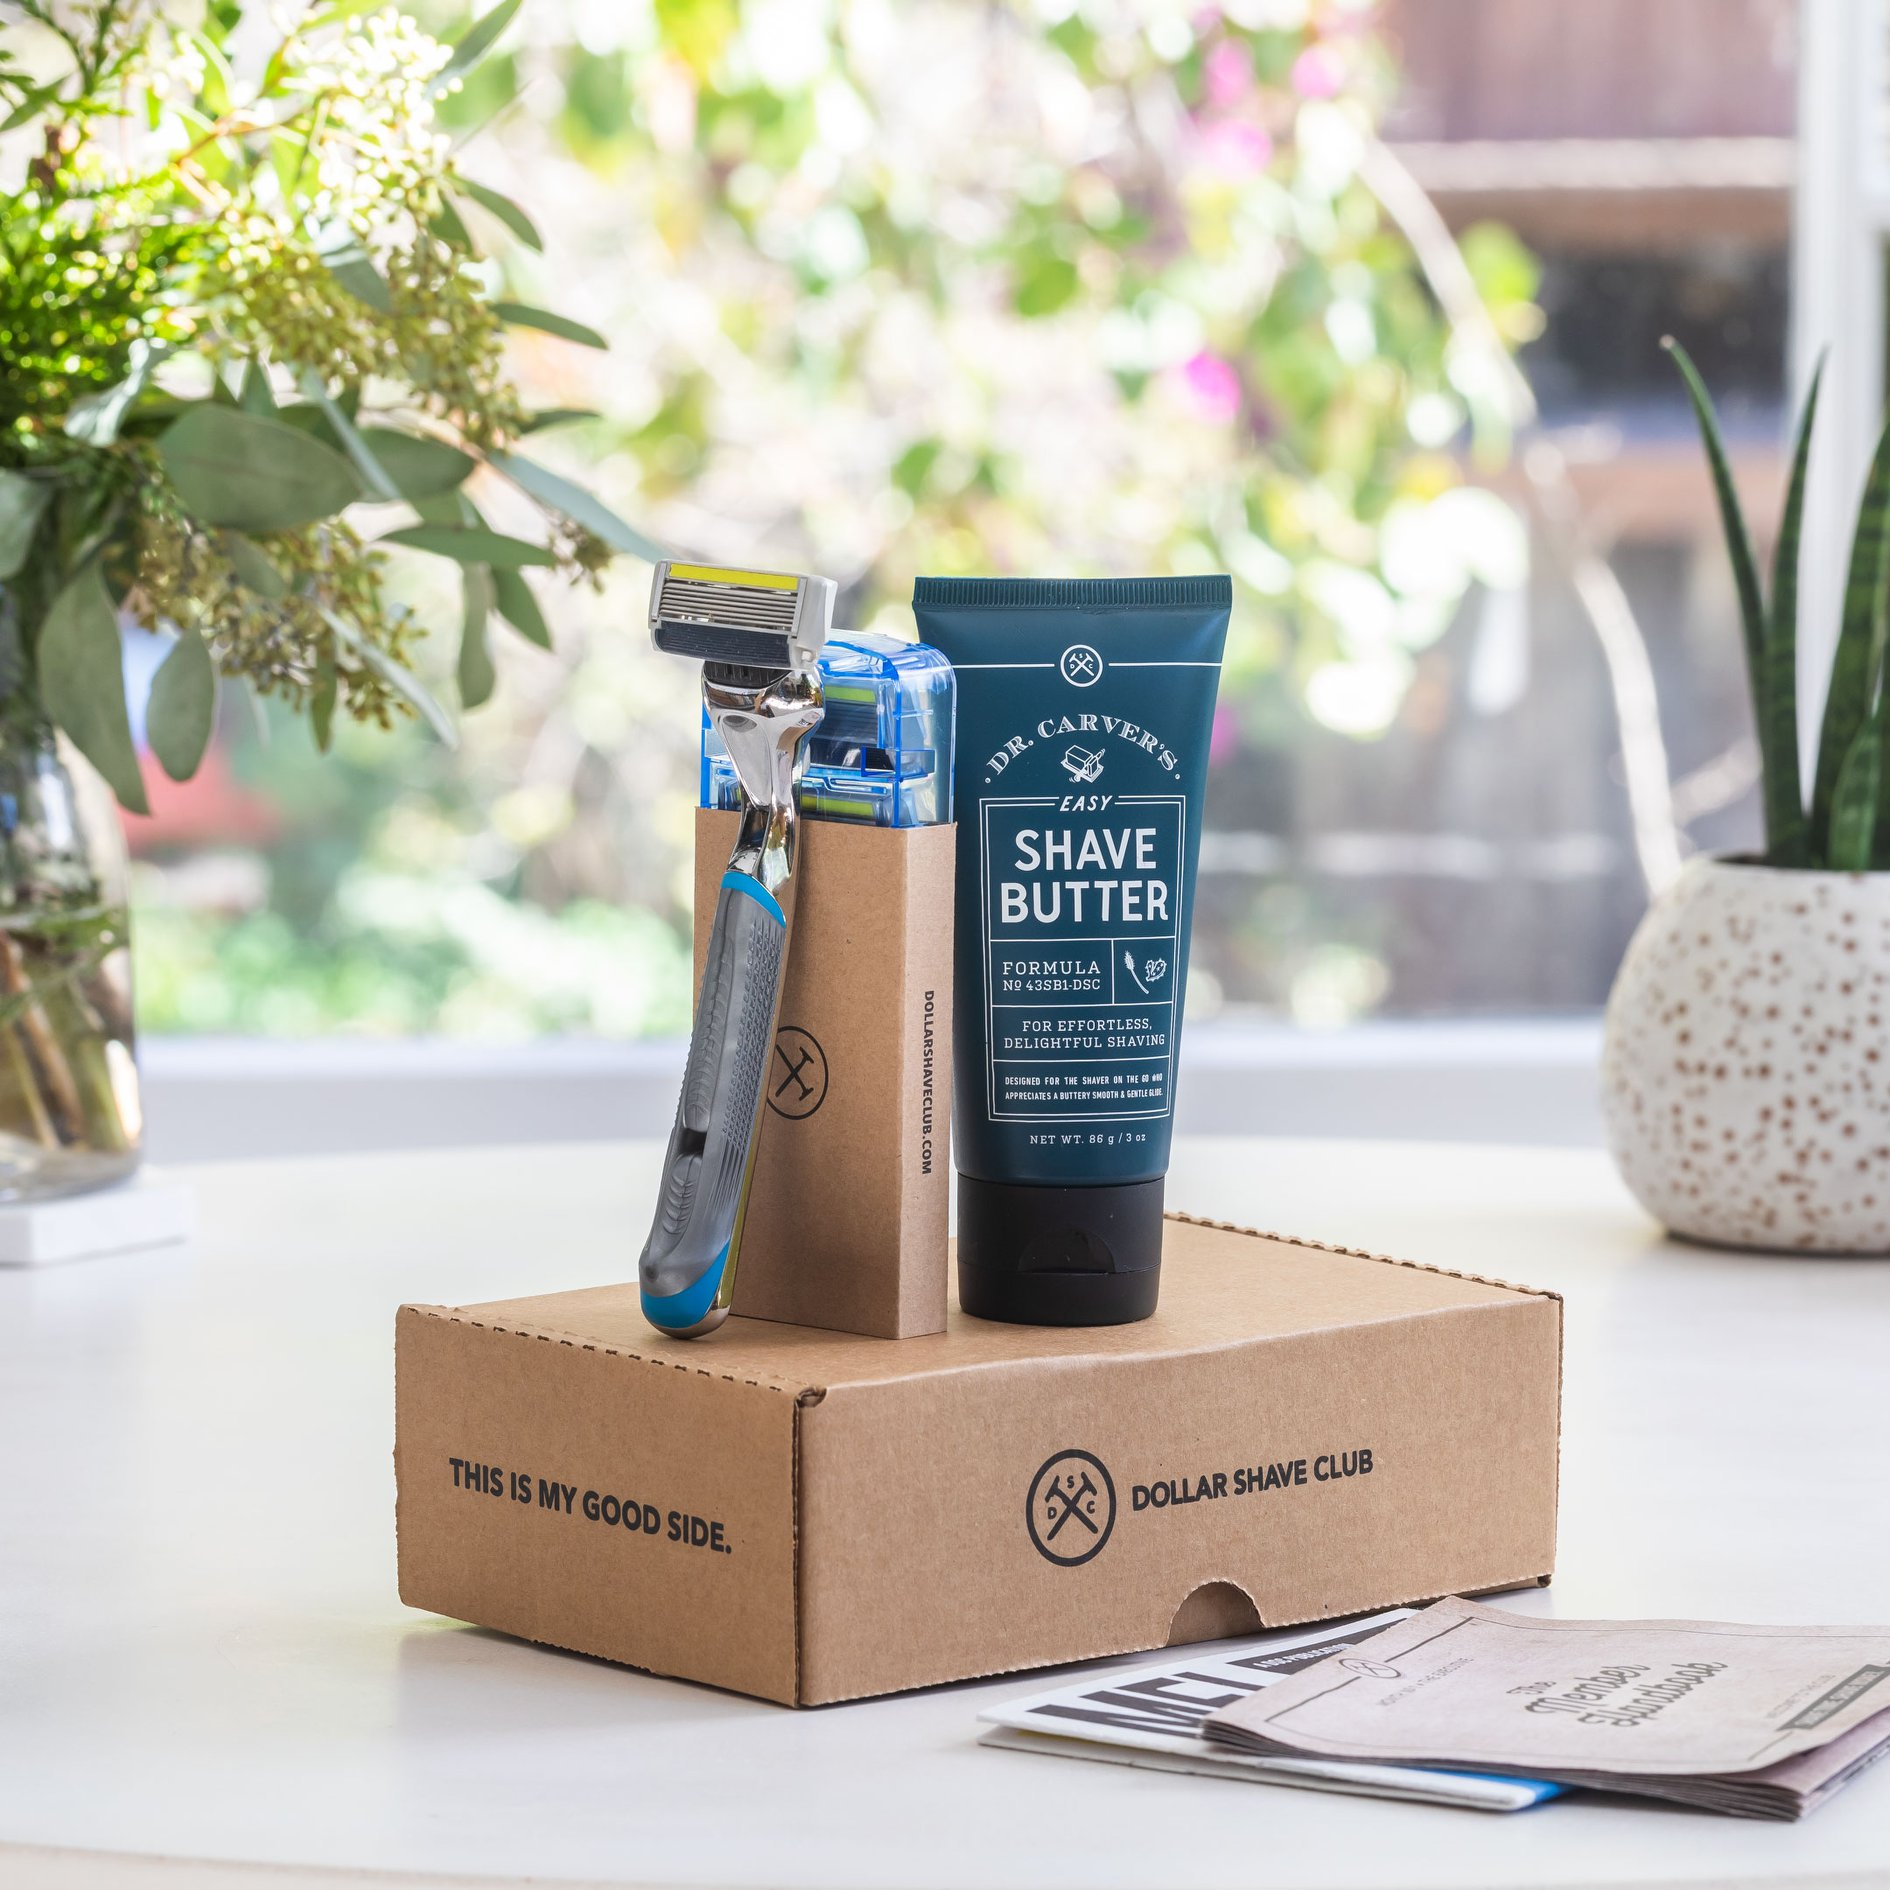 harrys and dollar shave club upended the shaving industry - HD1890×1890